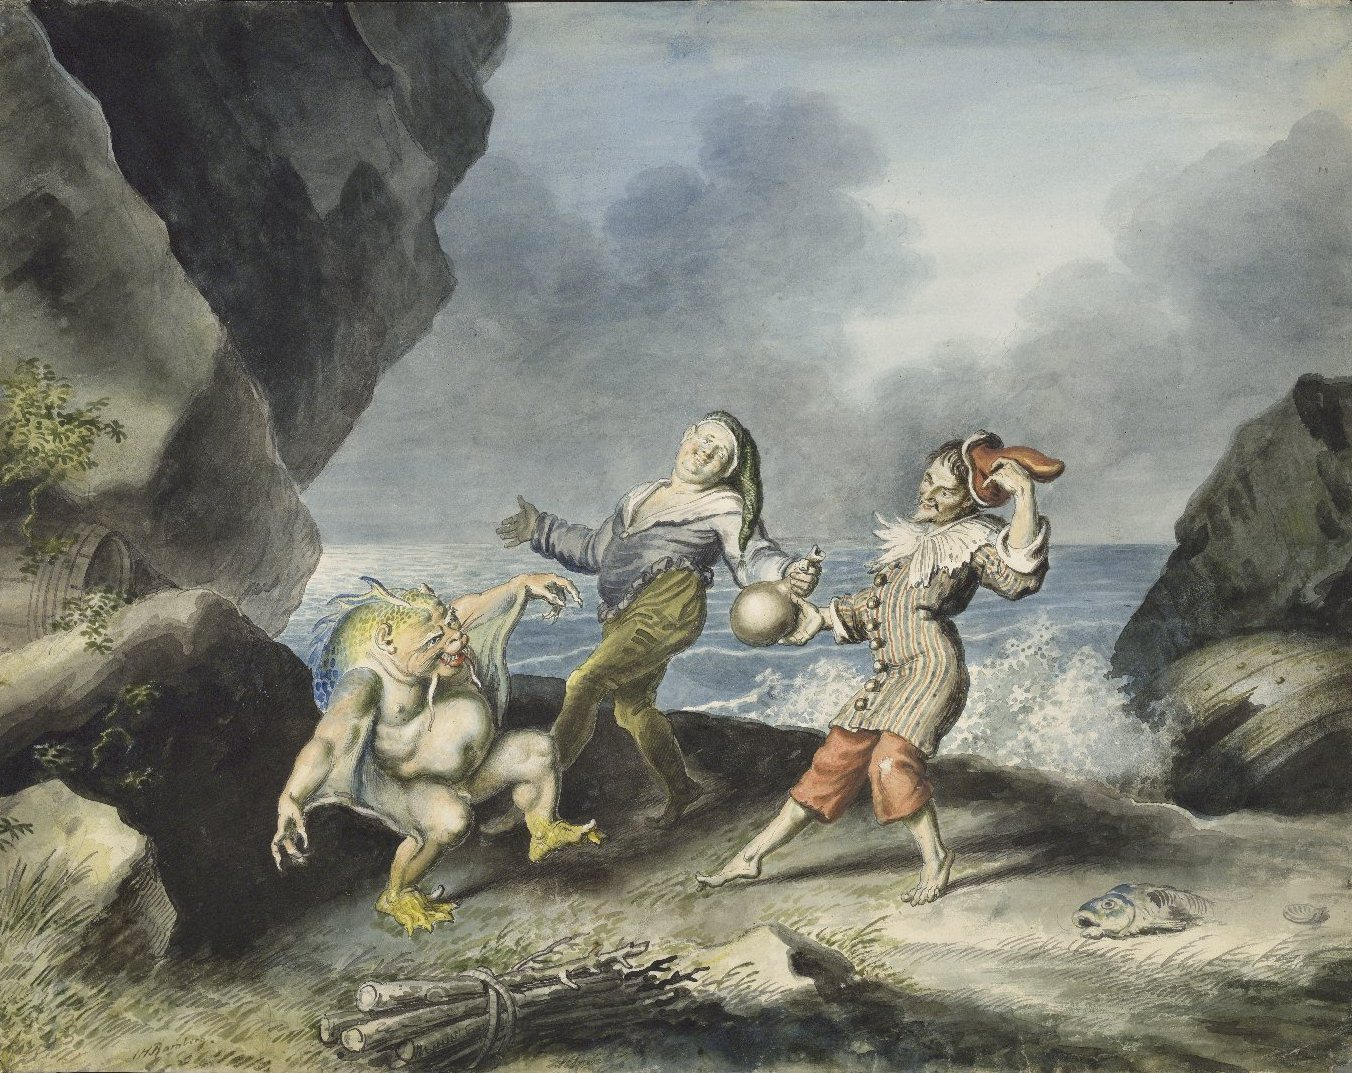 the tempest relationship between prospero and caliban 2018-10-06 what is the relationship between prospero ariel and caliban in acts 1 and 5 of 'the tempest.